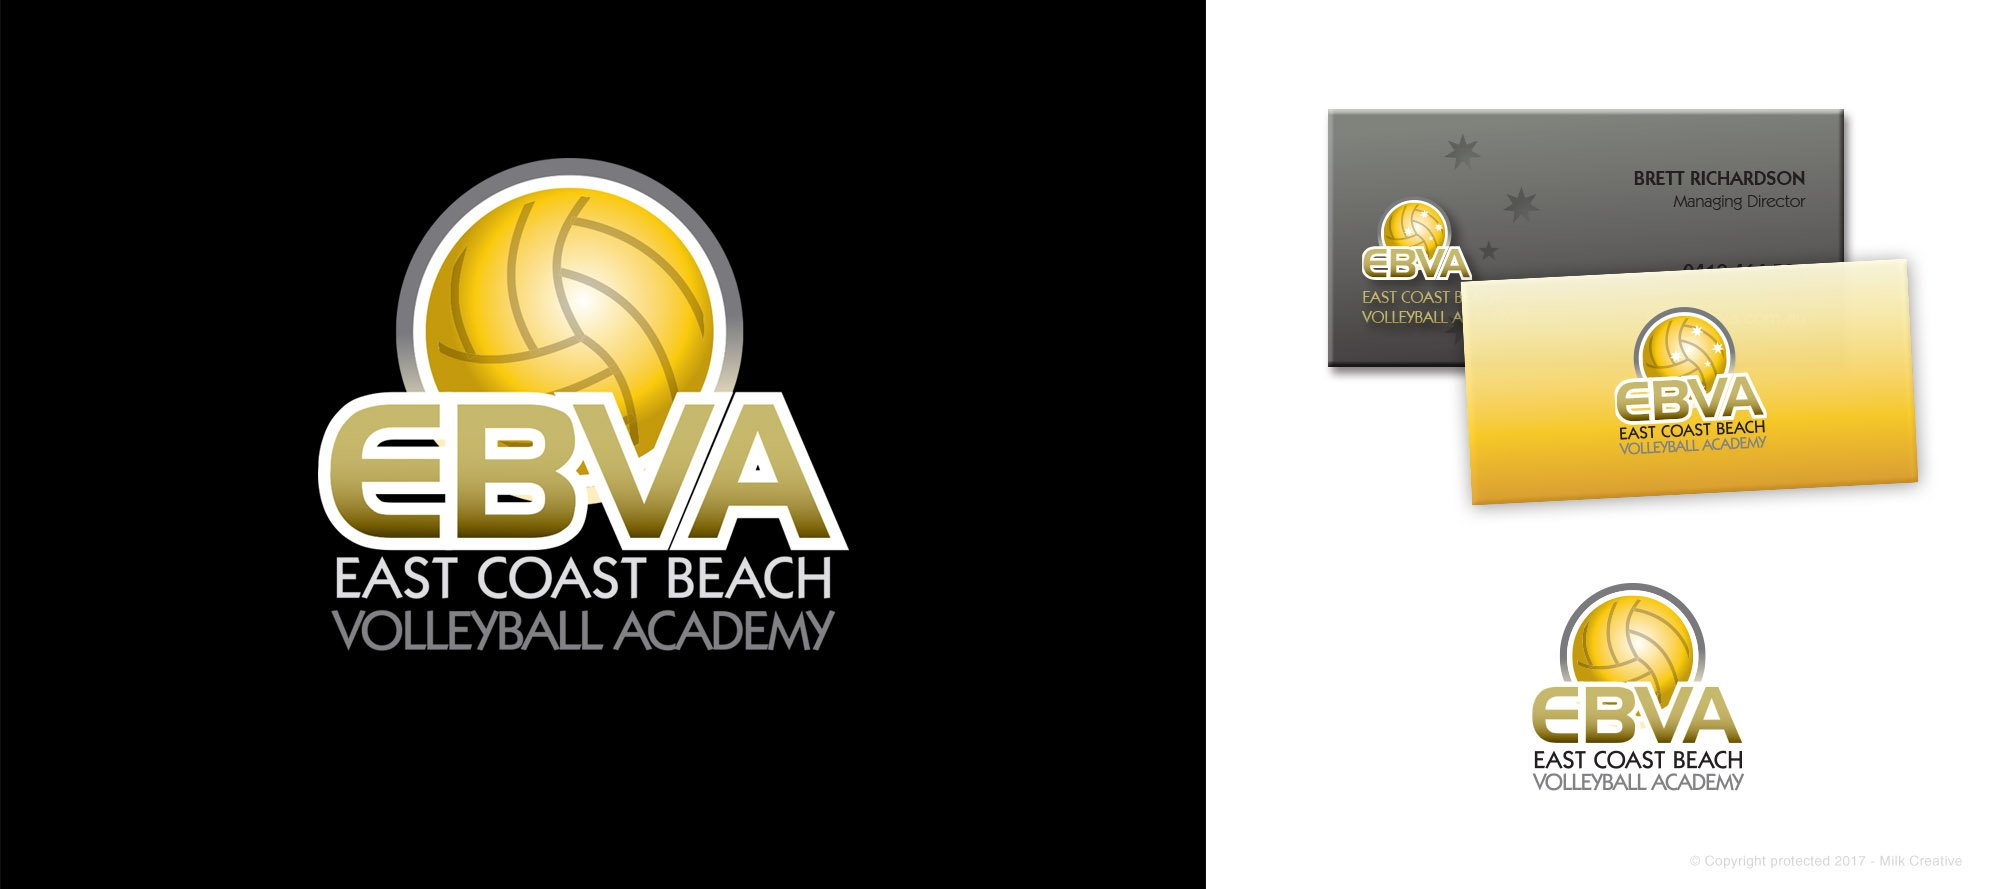 East Coast Beach Volleyball Academy